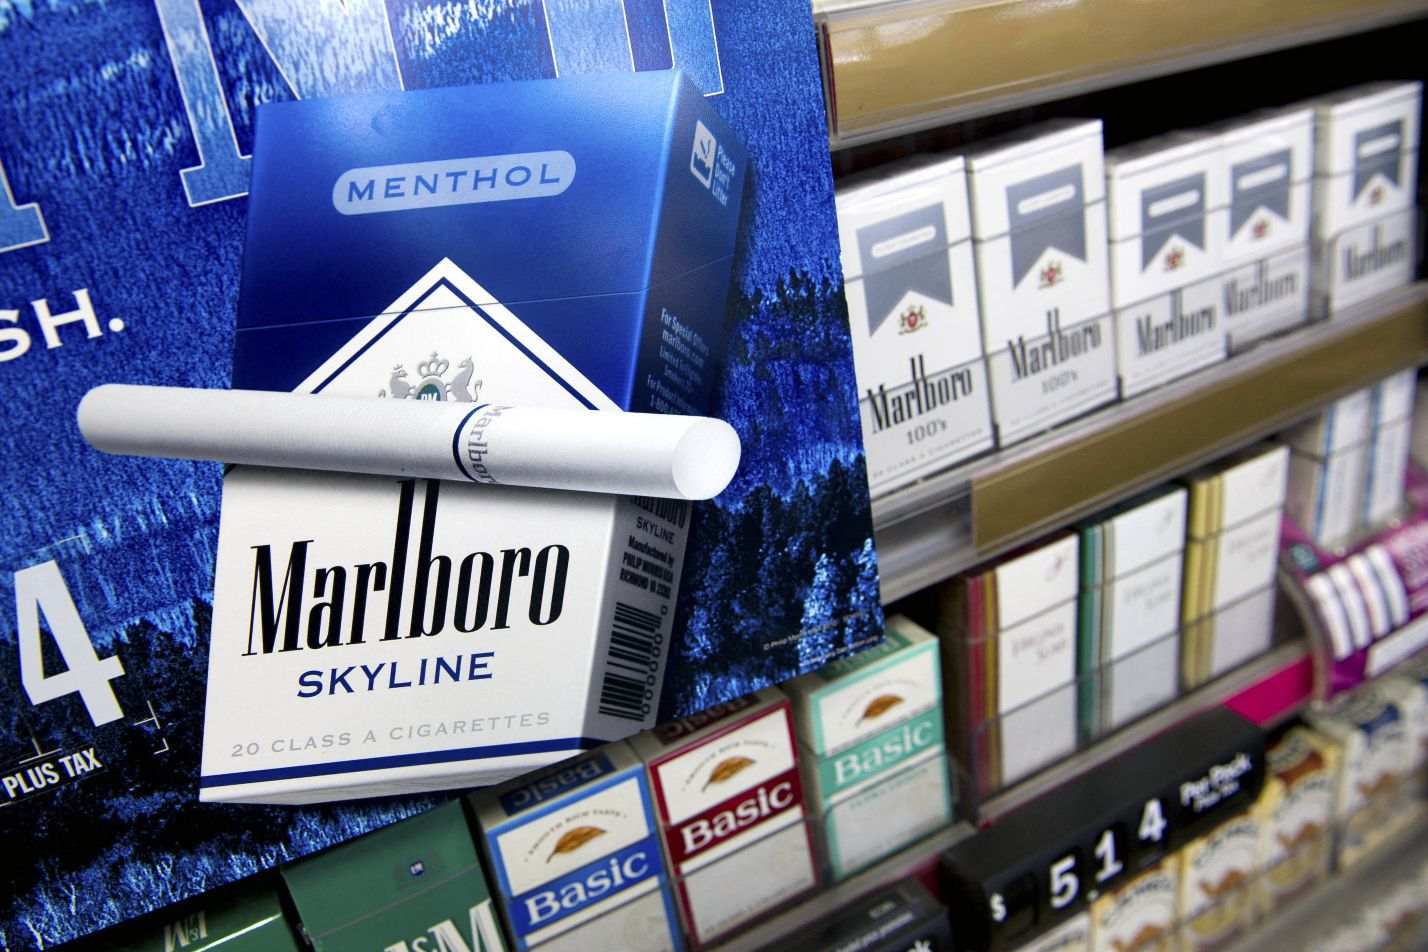 After Cigarette-Fee Rejection, Oklahoma Releases New Plan To Address Budget Gap